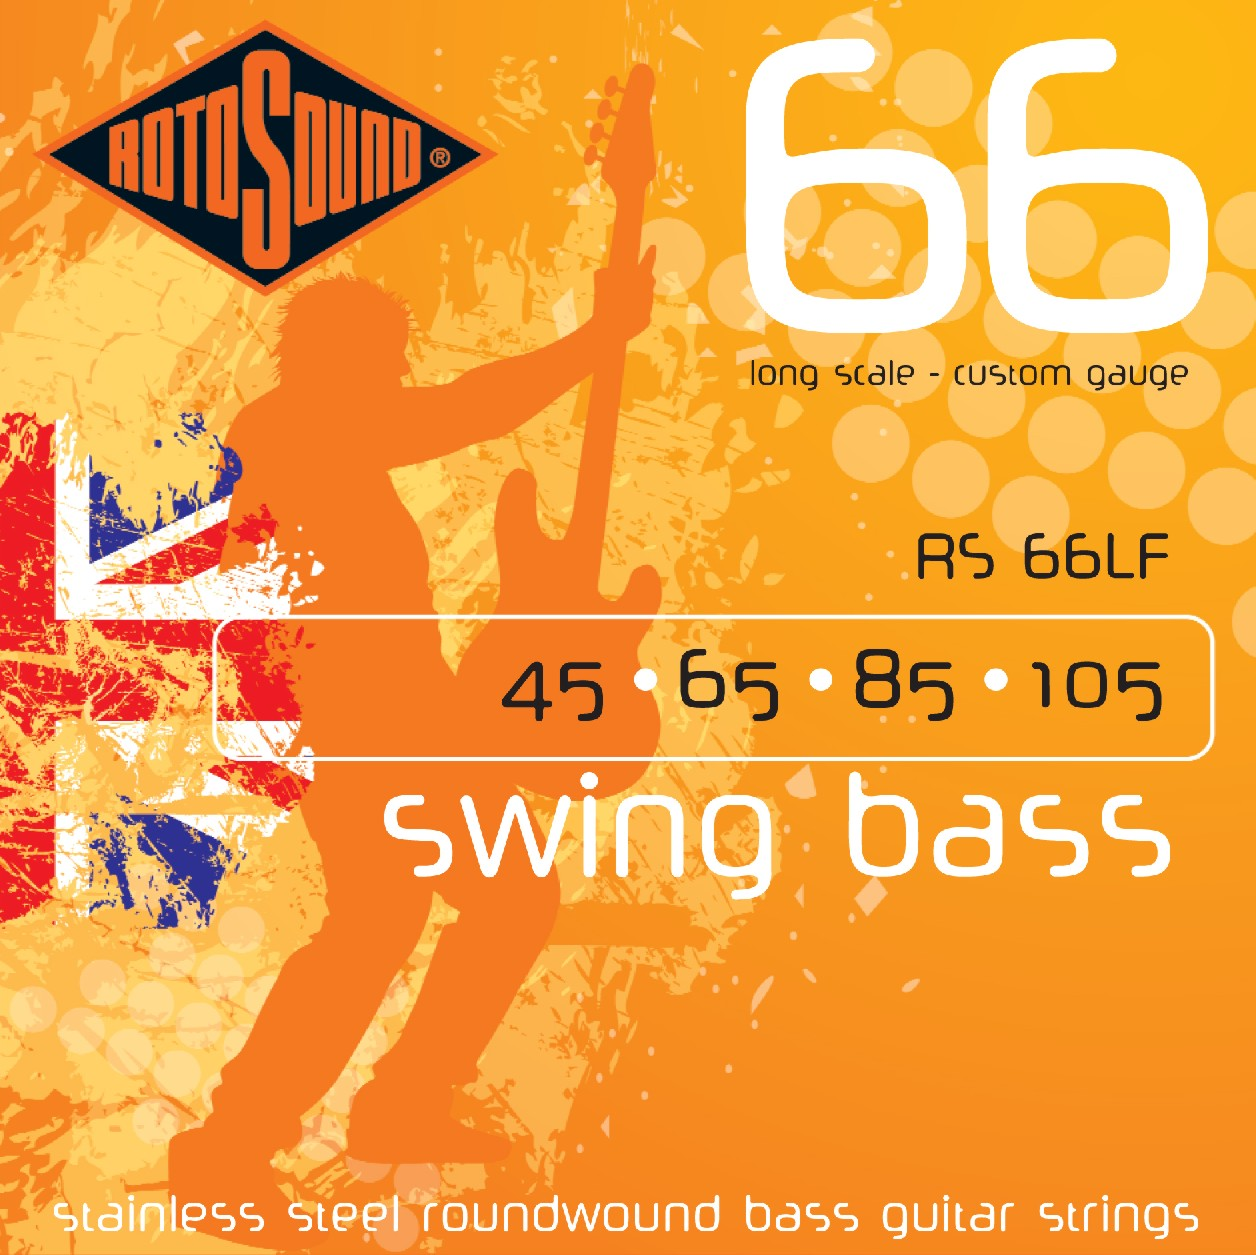 rotosound rs66lf swing bass long scale custom gauge strings. Black Bedroom Furniture Sets. Home Design Ideas